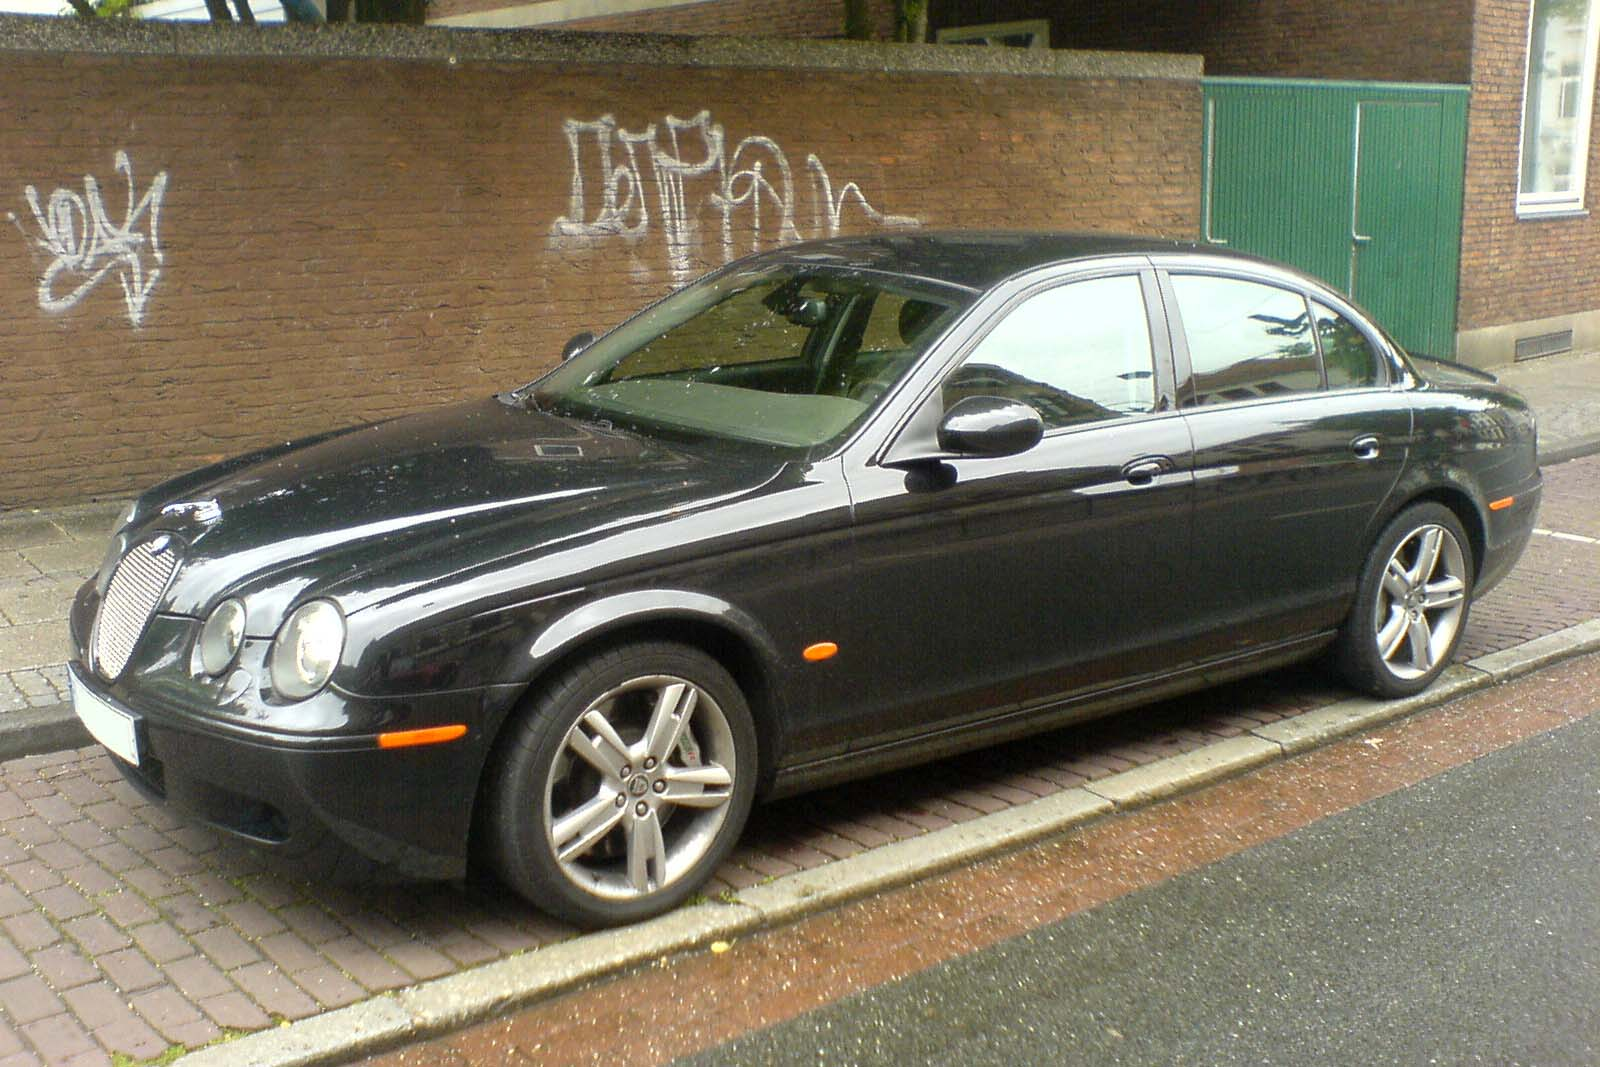 Jaguar 4.2 photo - 2